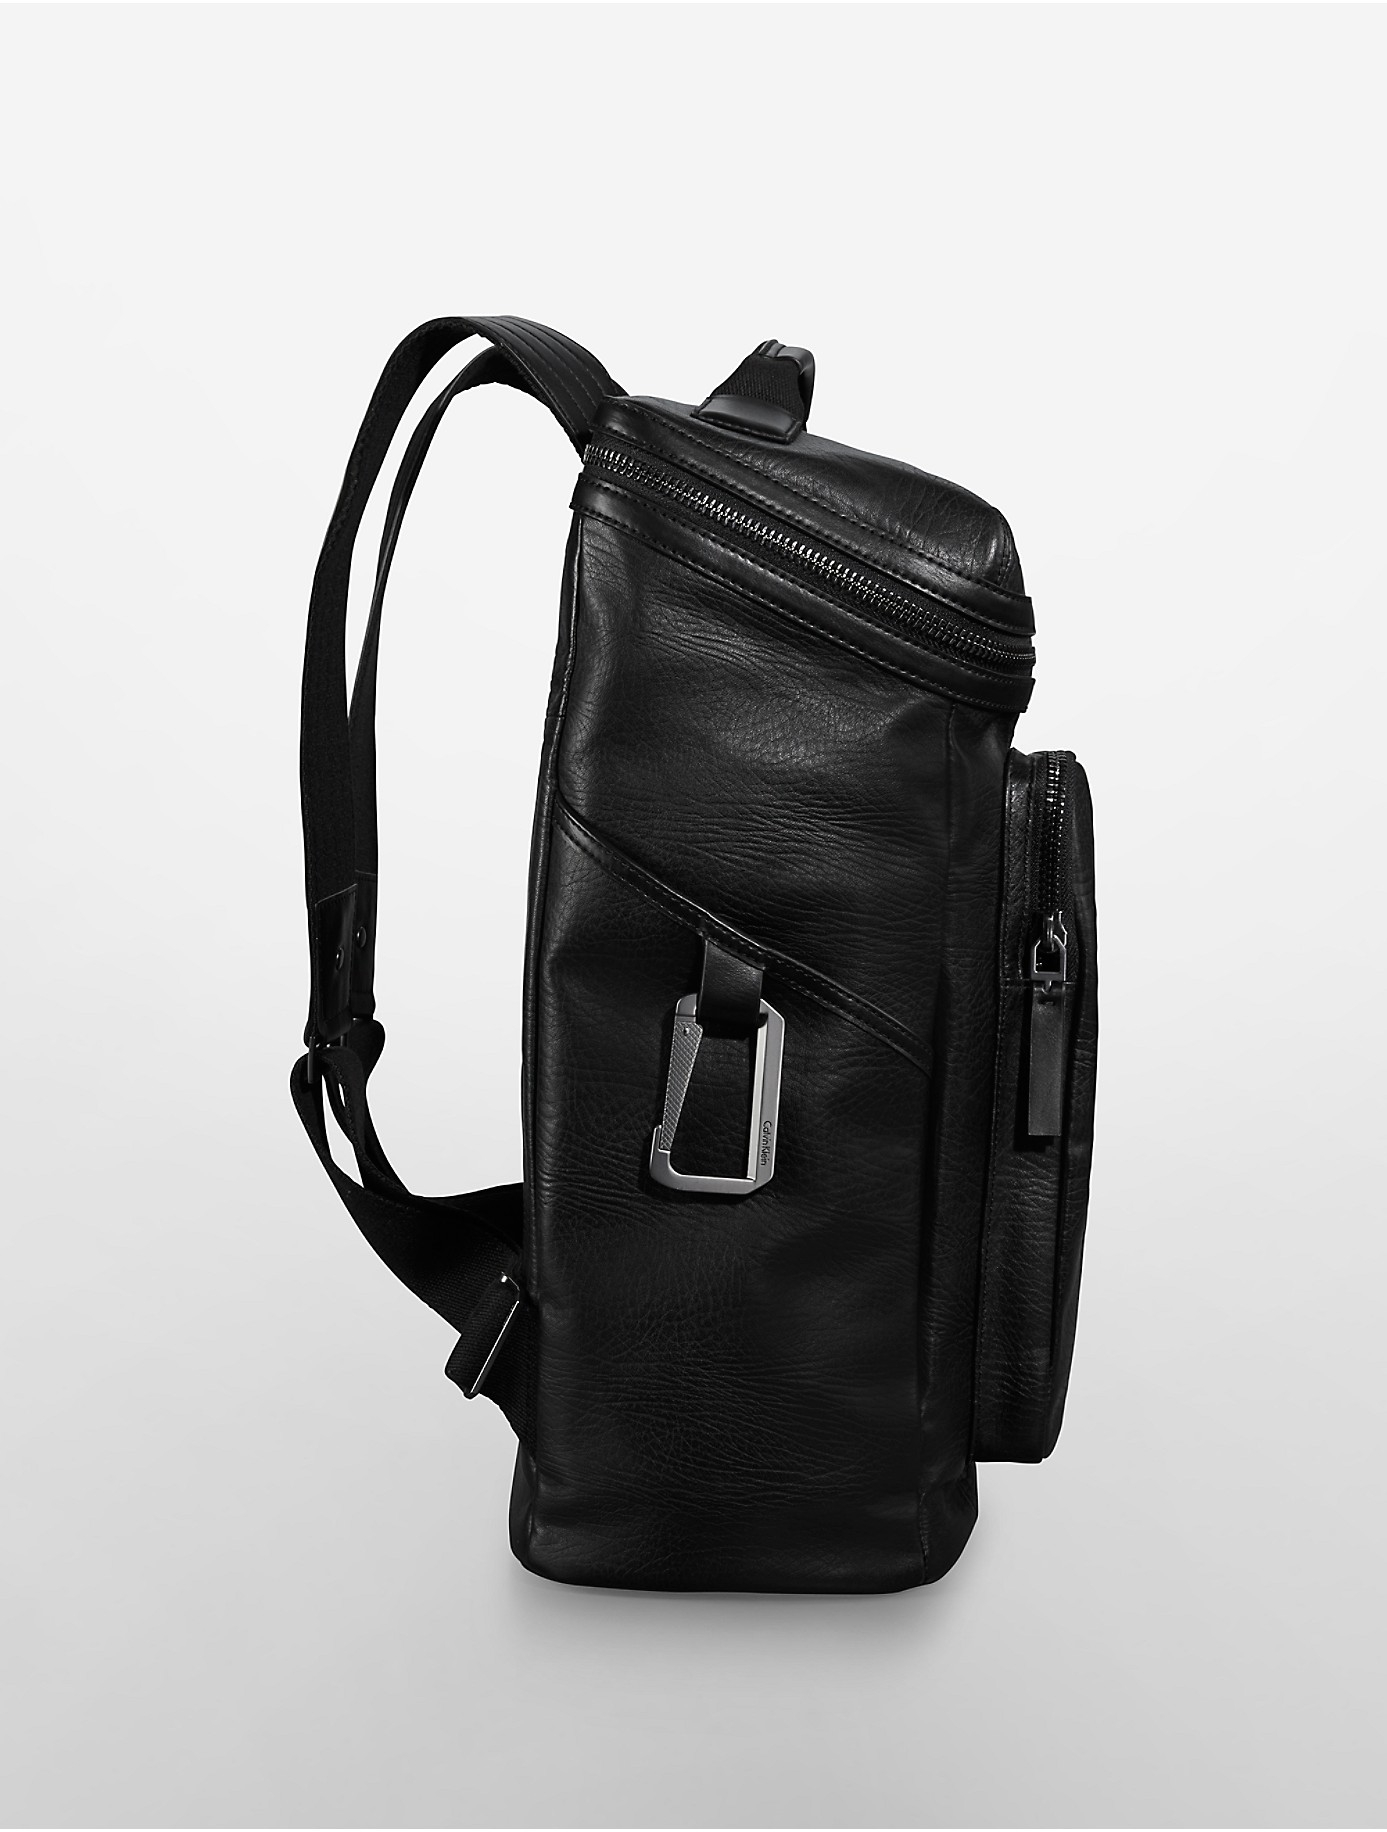 Lyst Calvin Klein Jeans William Textured Leather Backpack In Black 104530d015031